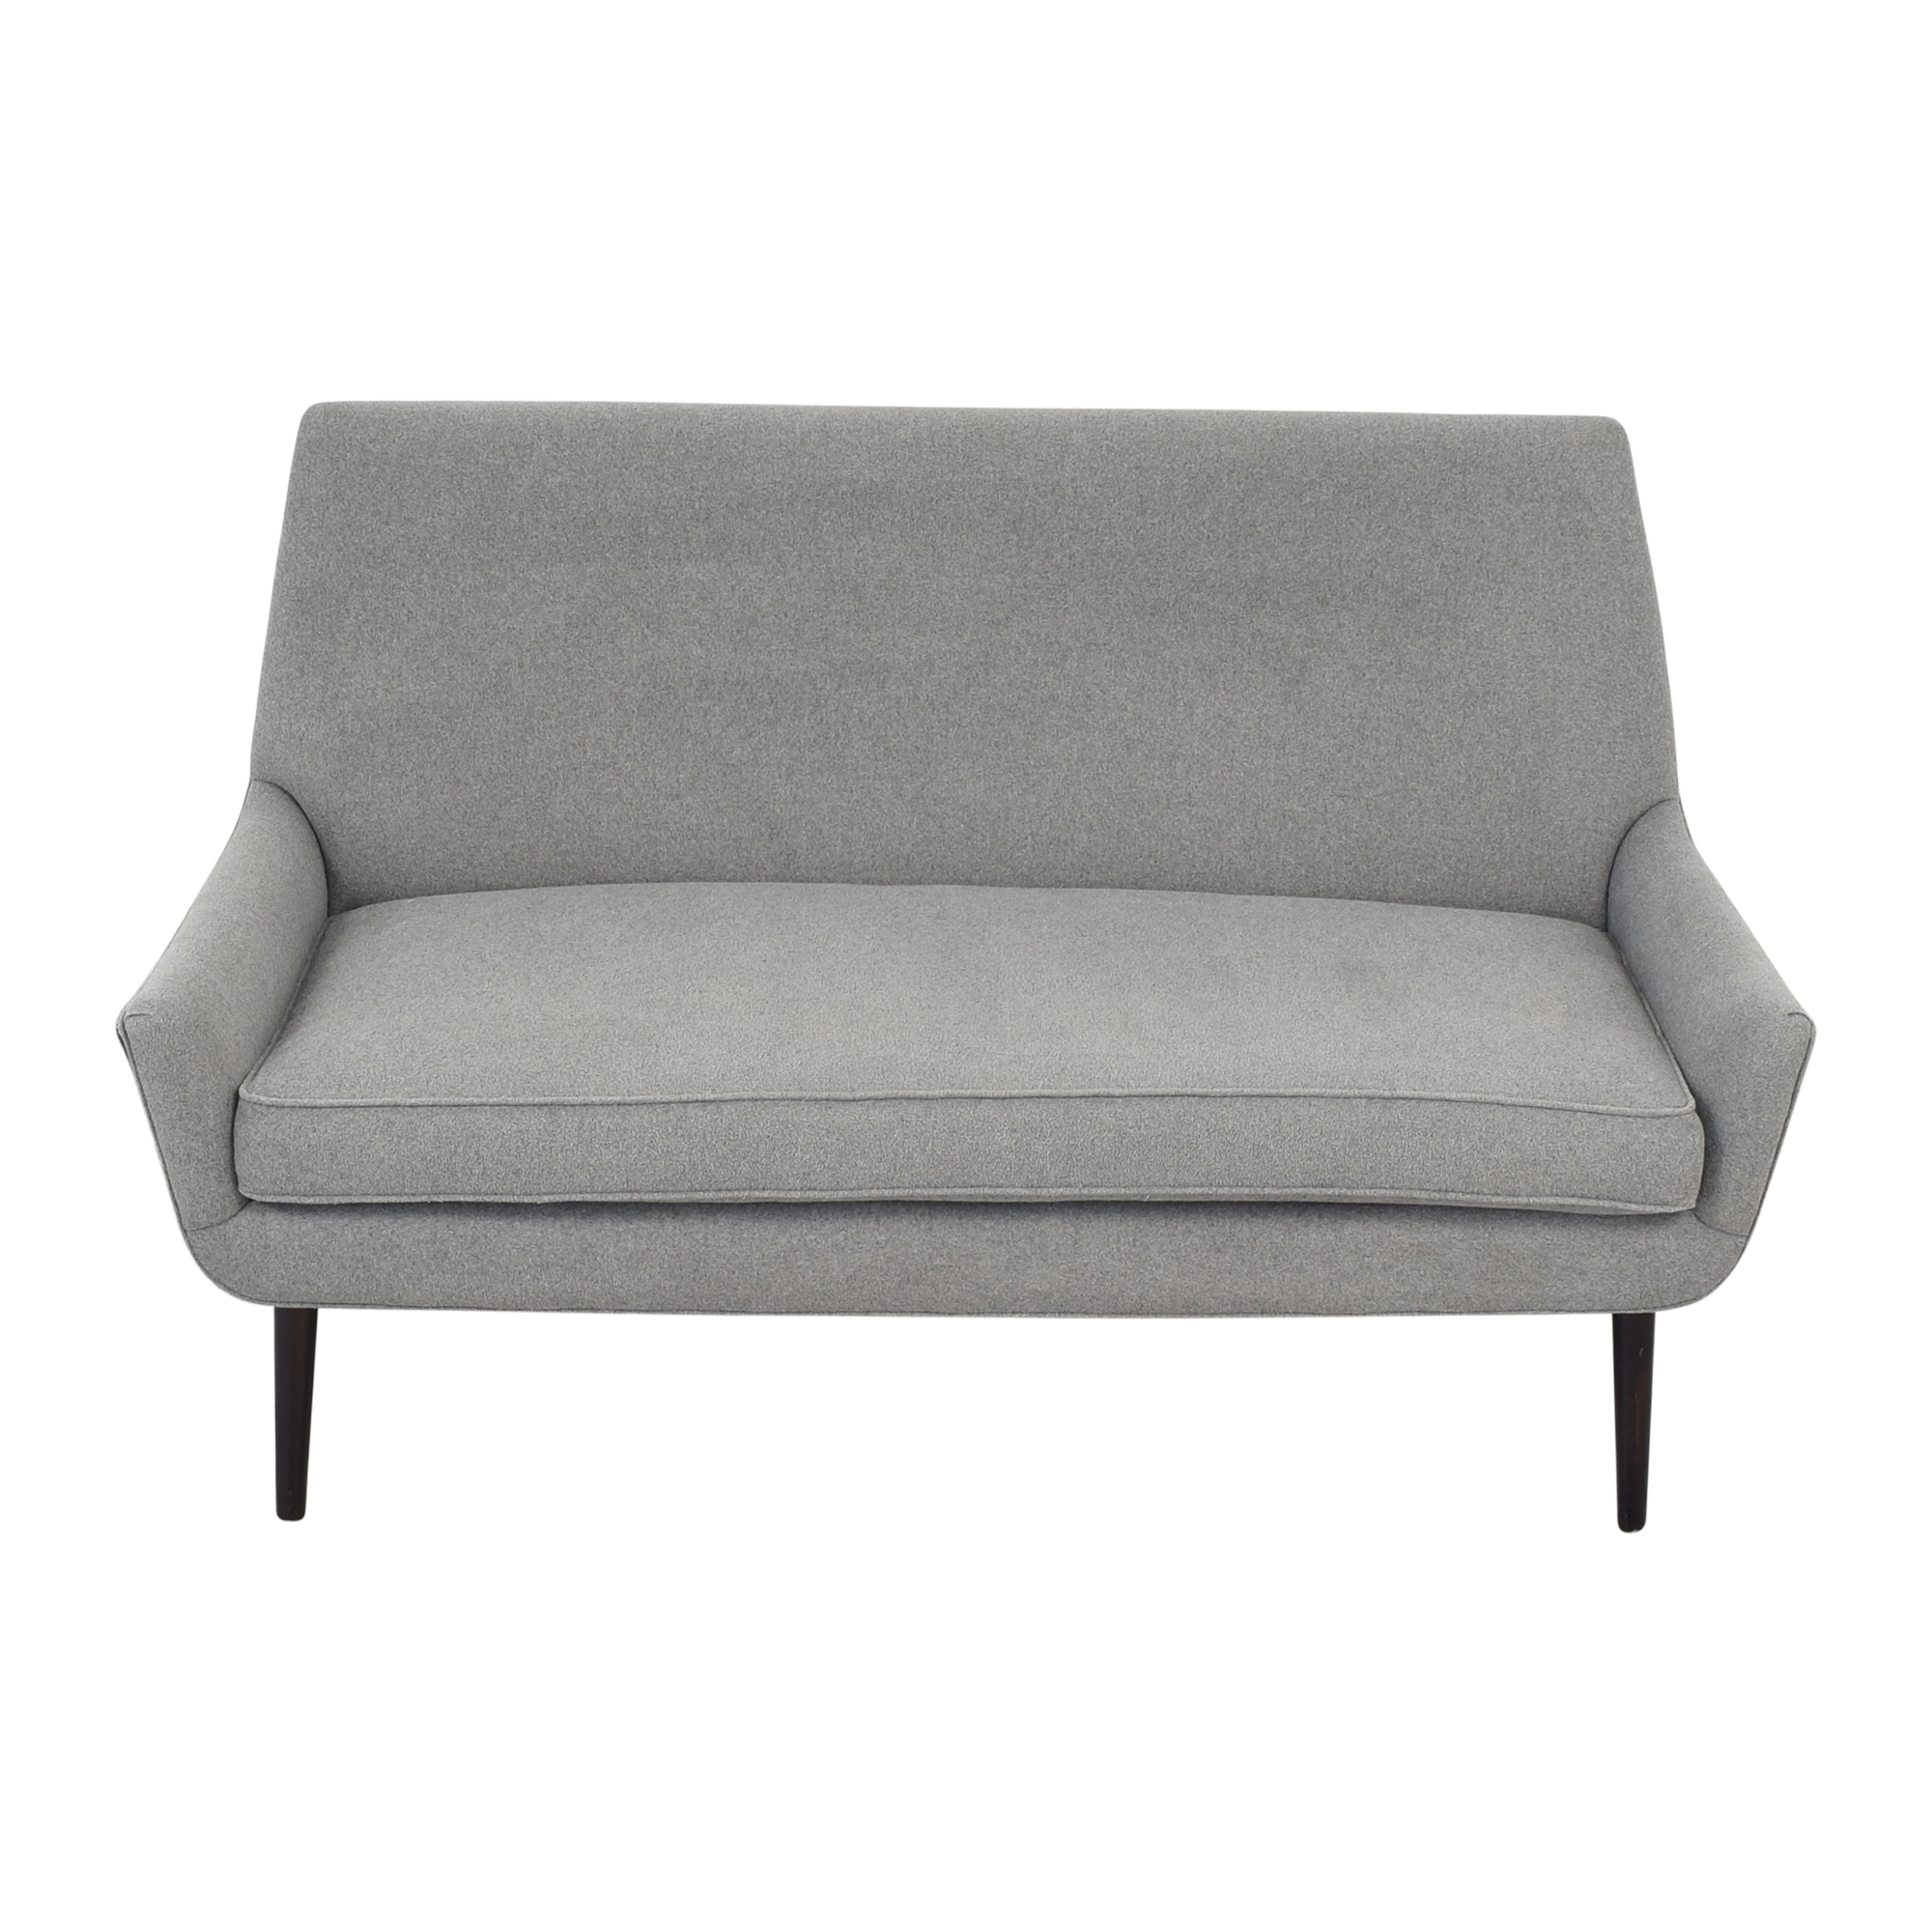 ABC Carpet & Home ABC Carpet & Home Grey Sofa Loveseat price